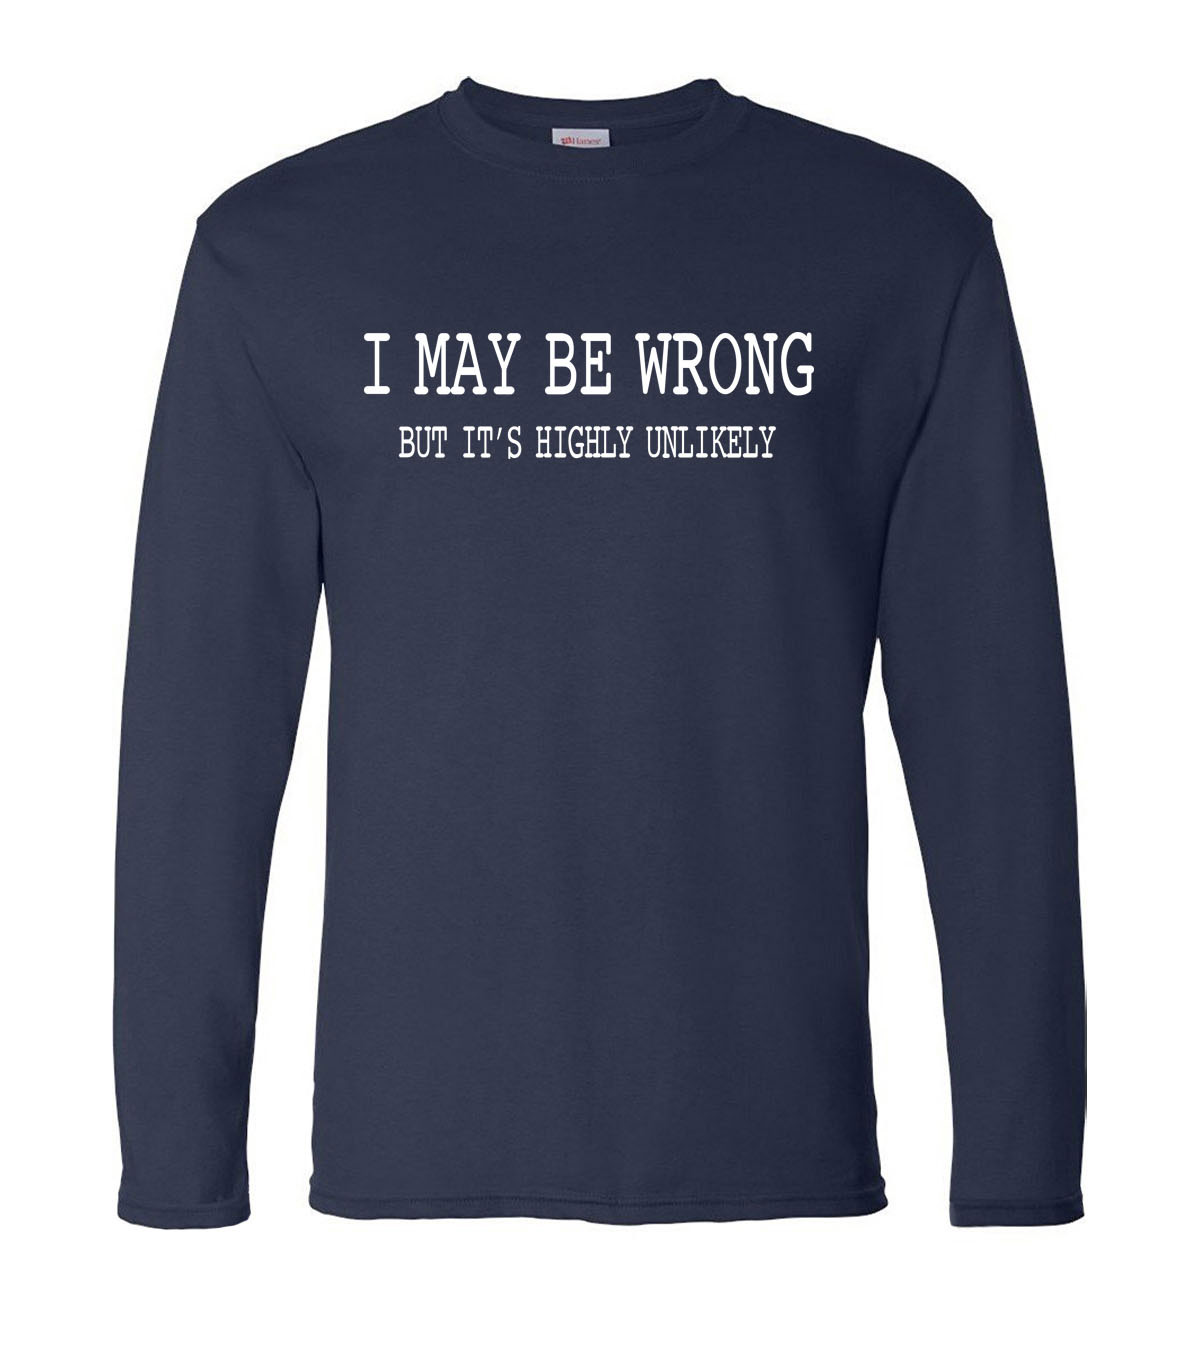 New Arrival I May Be Wrong Funny Men T Shirts 2019 Spring New 100% Cotton Men's Long Sleeve T-shirts Hip Hop Men's Sportswear